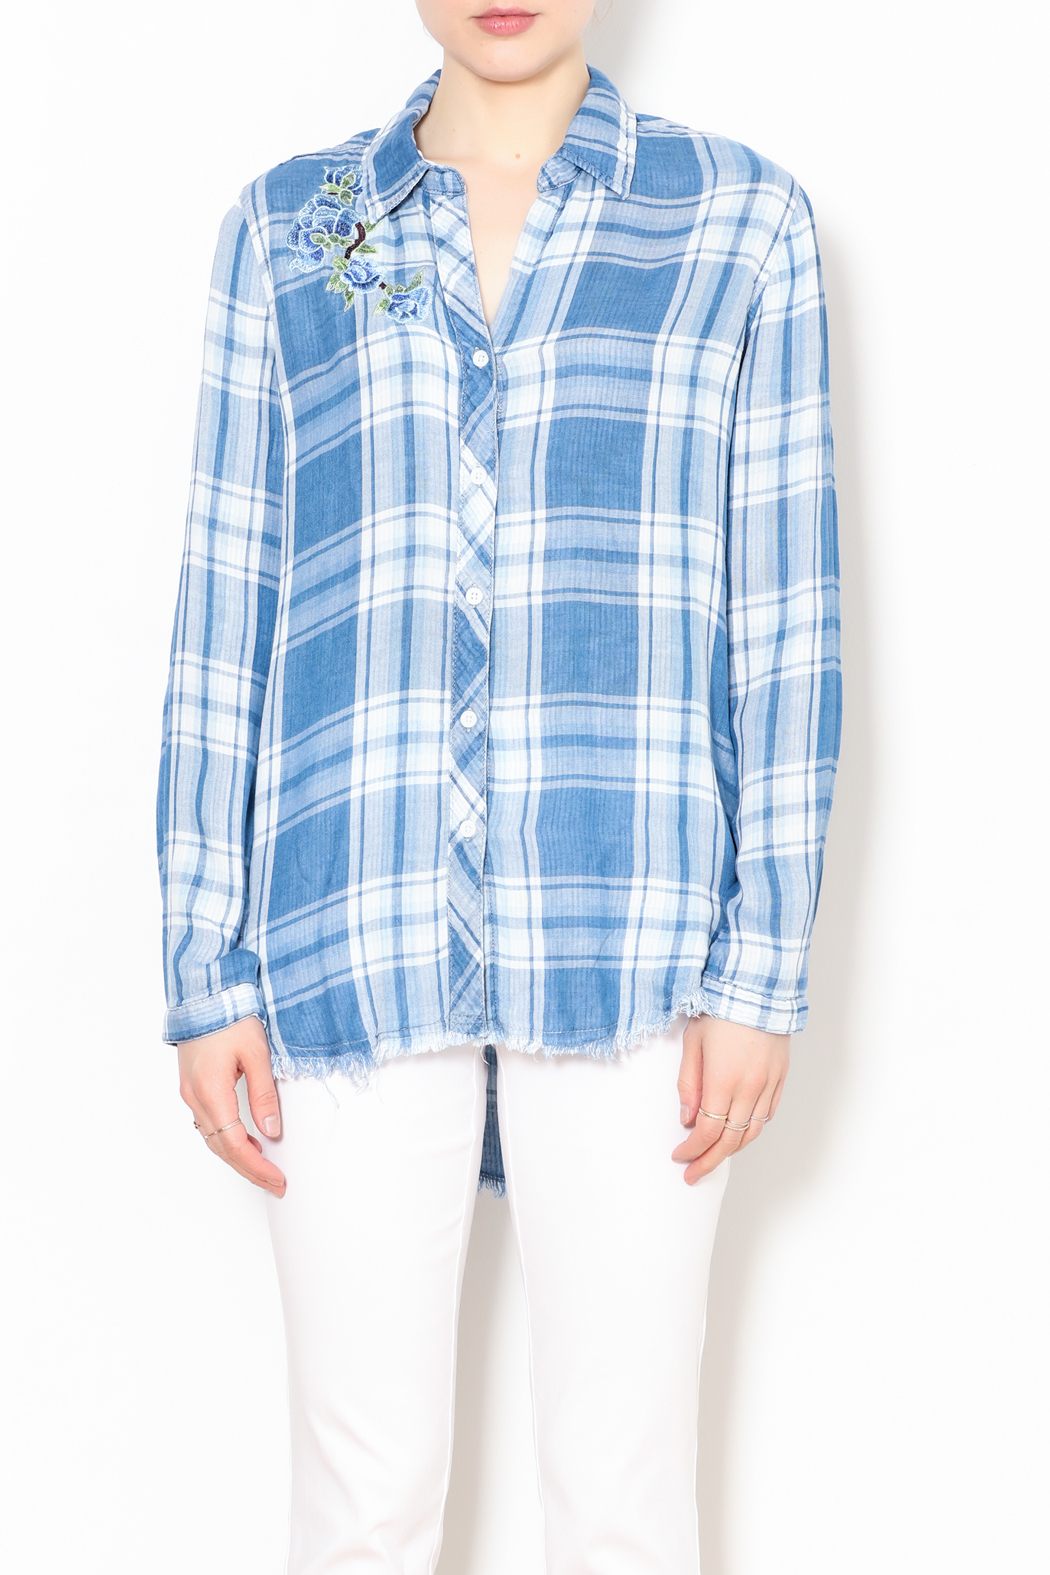 Talk of the Walk The Plaid Button Down Top - Front Full Image